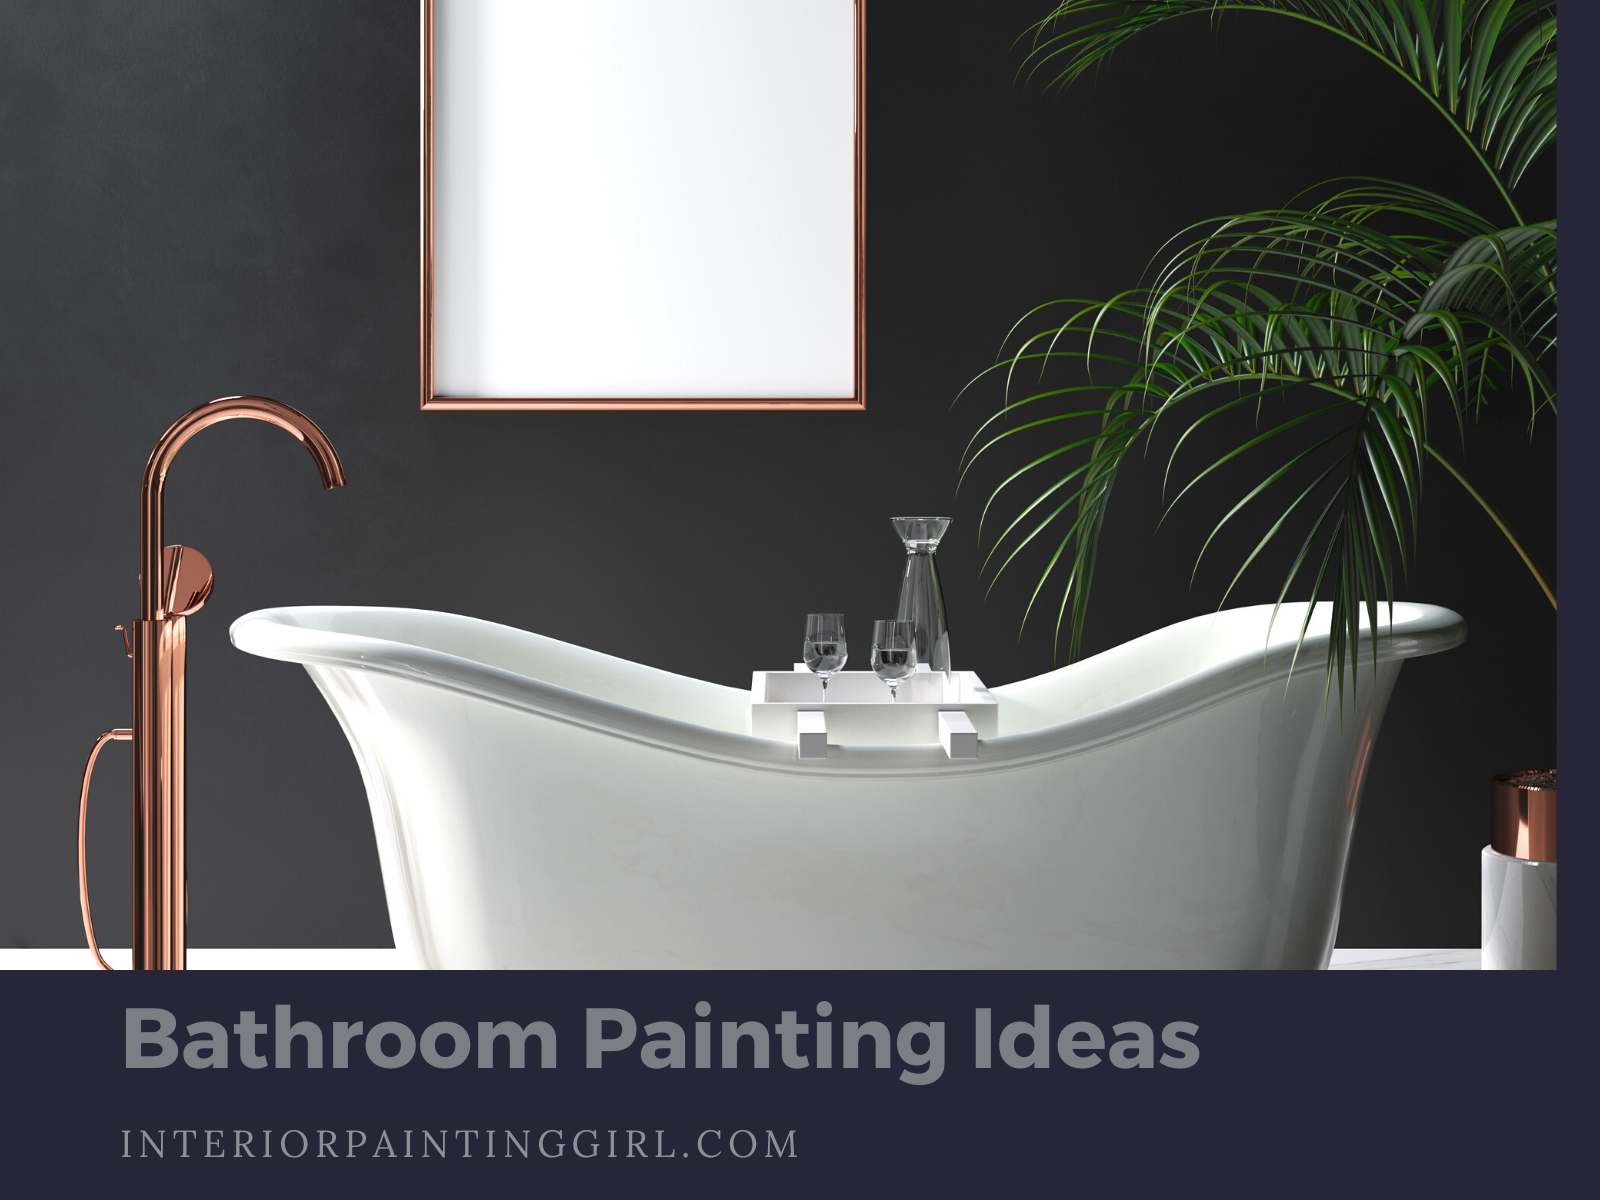 Bathroom Painting Ideas - Dark and Elegant Paint Colors - THAT Interior Painting Girl